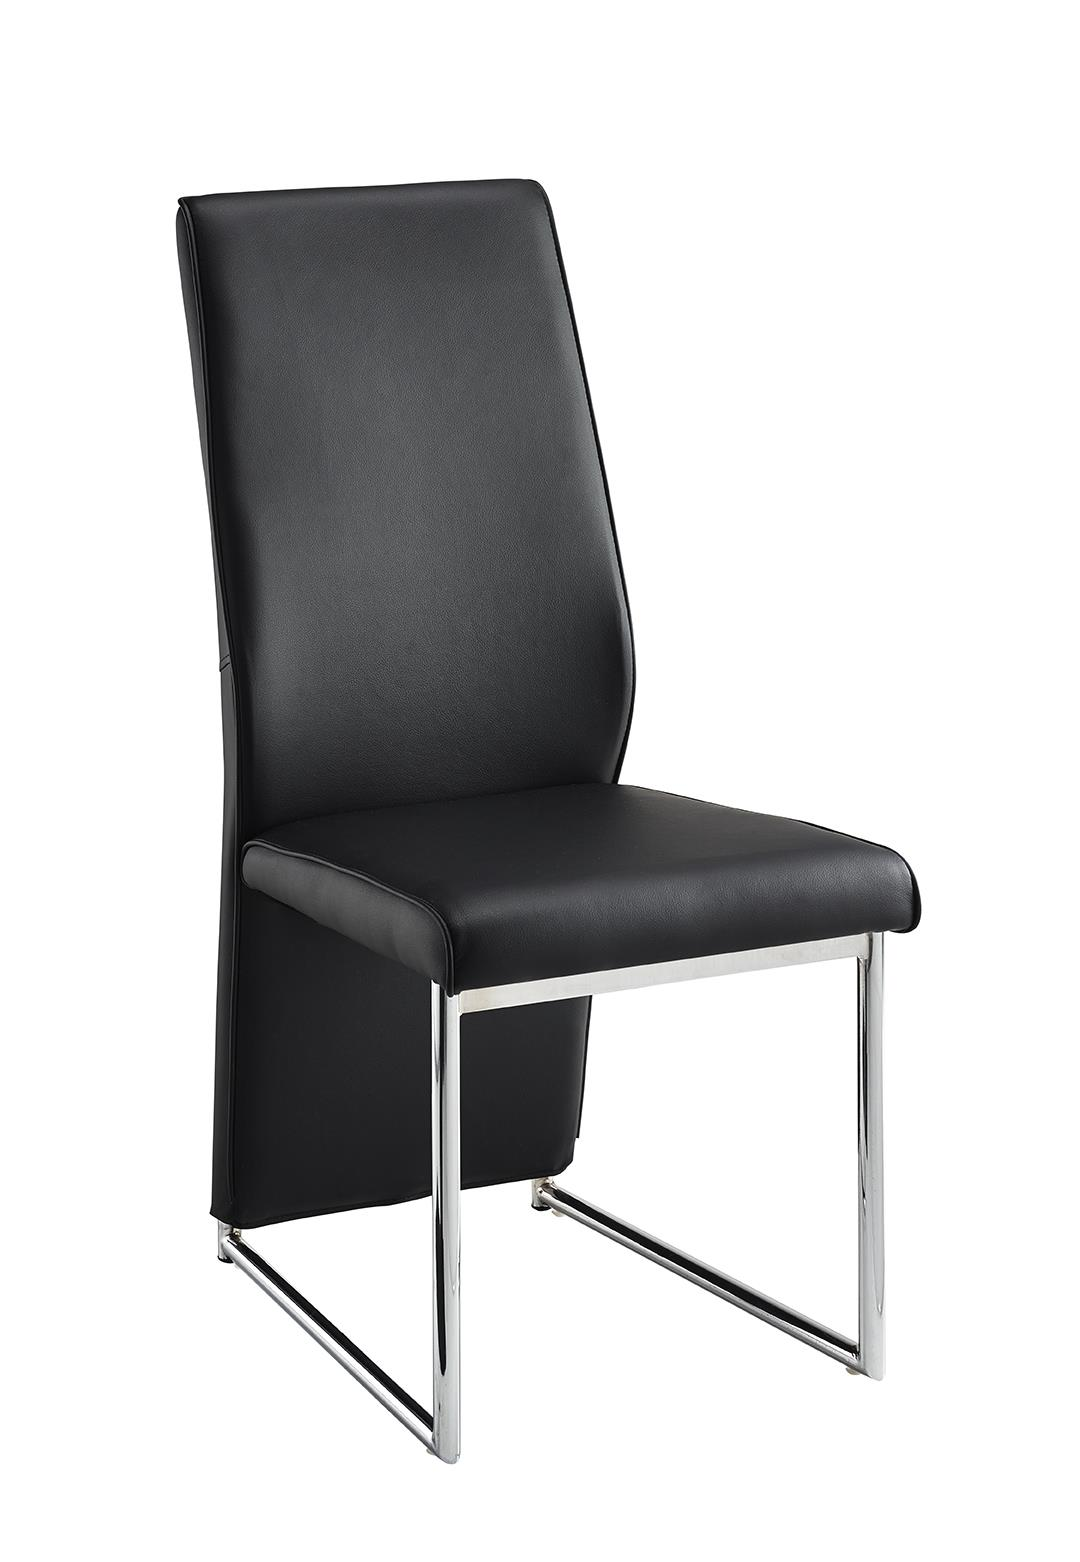 Set of 4x IFC Franco Dining Kitchen Chairs Black Faux Leather Chrome